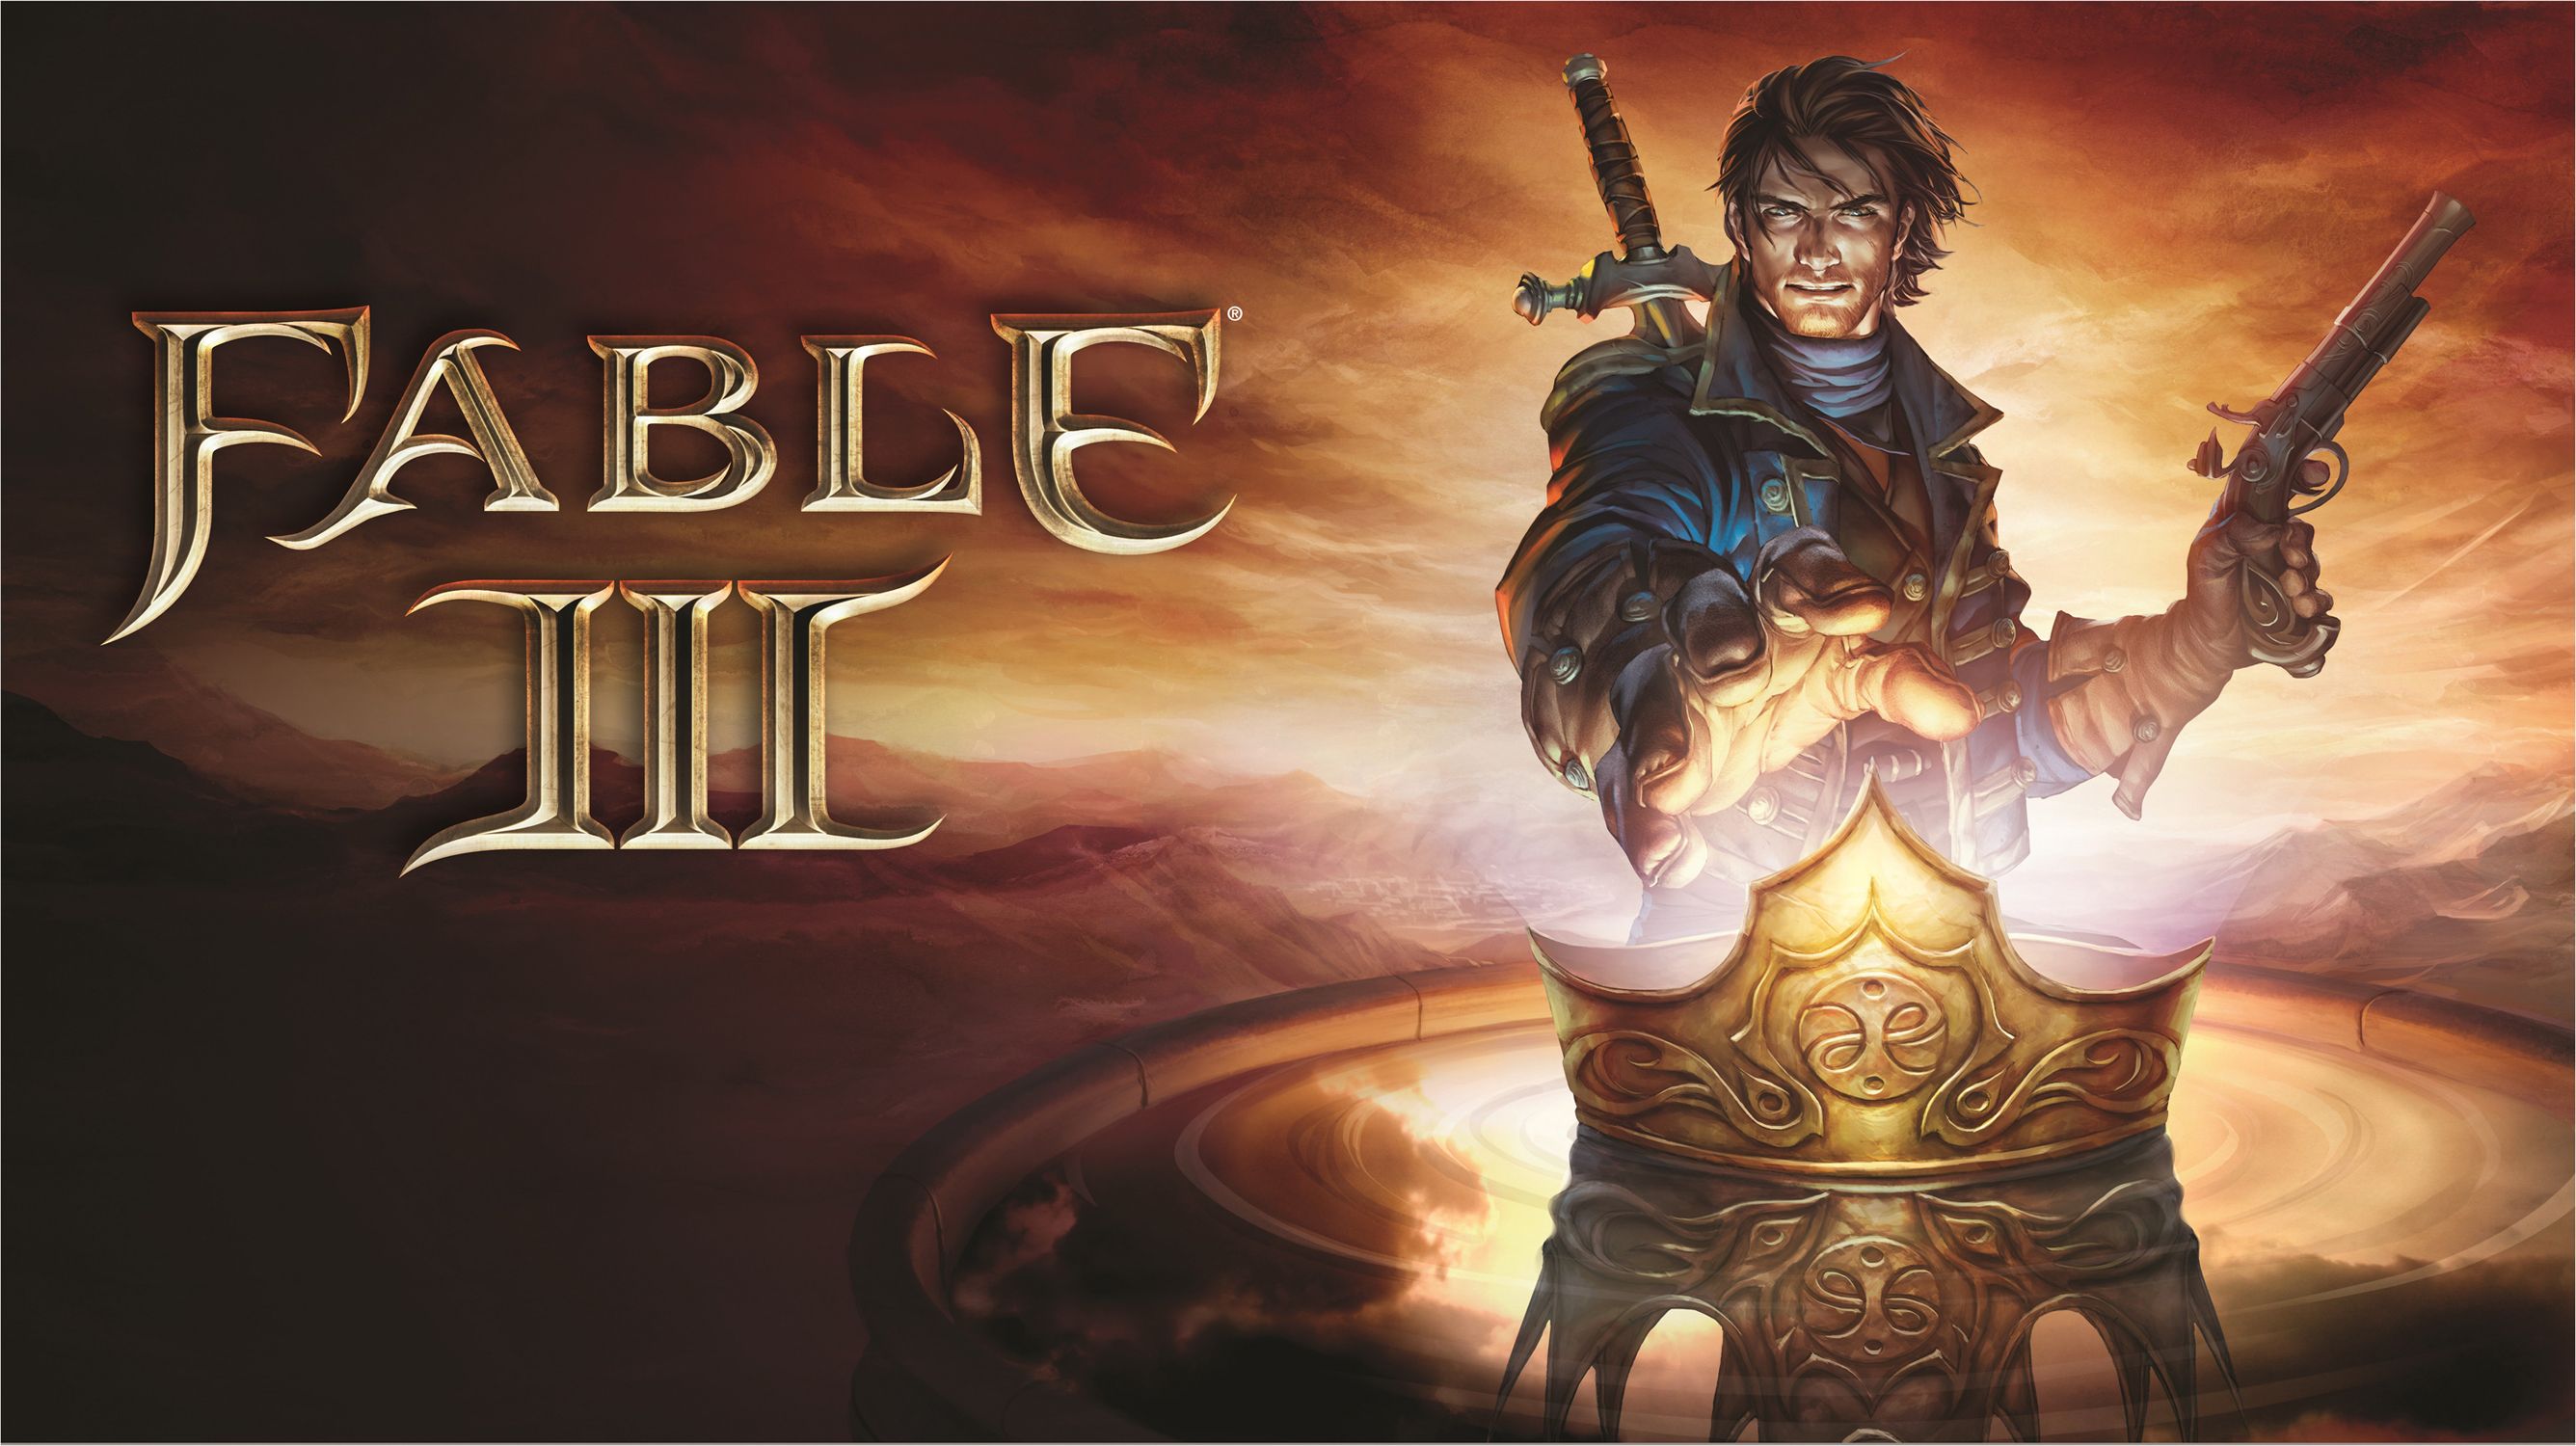 Fable Wallpapers Picgifs Com